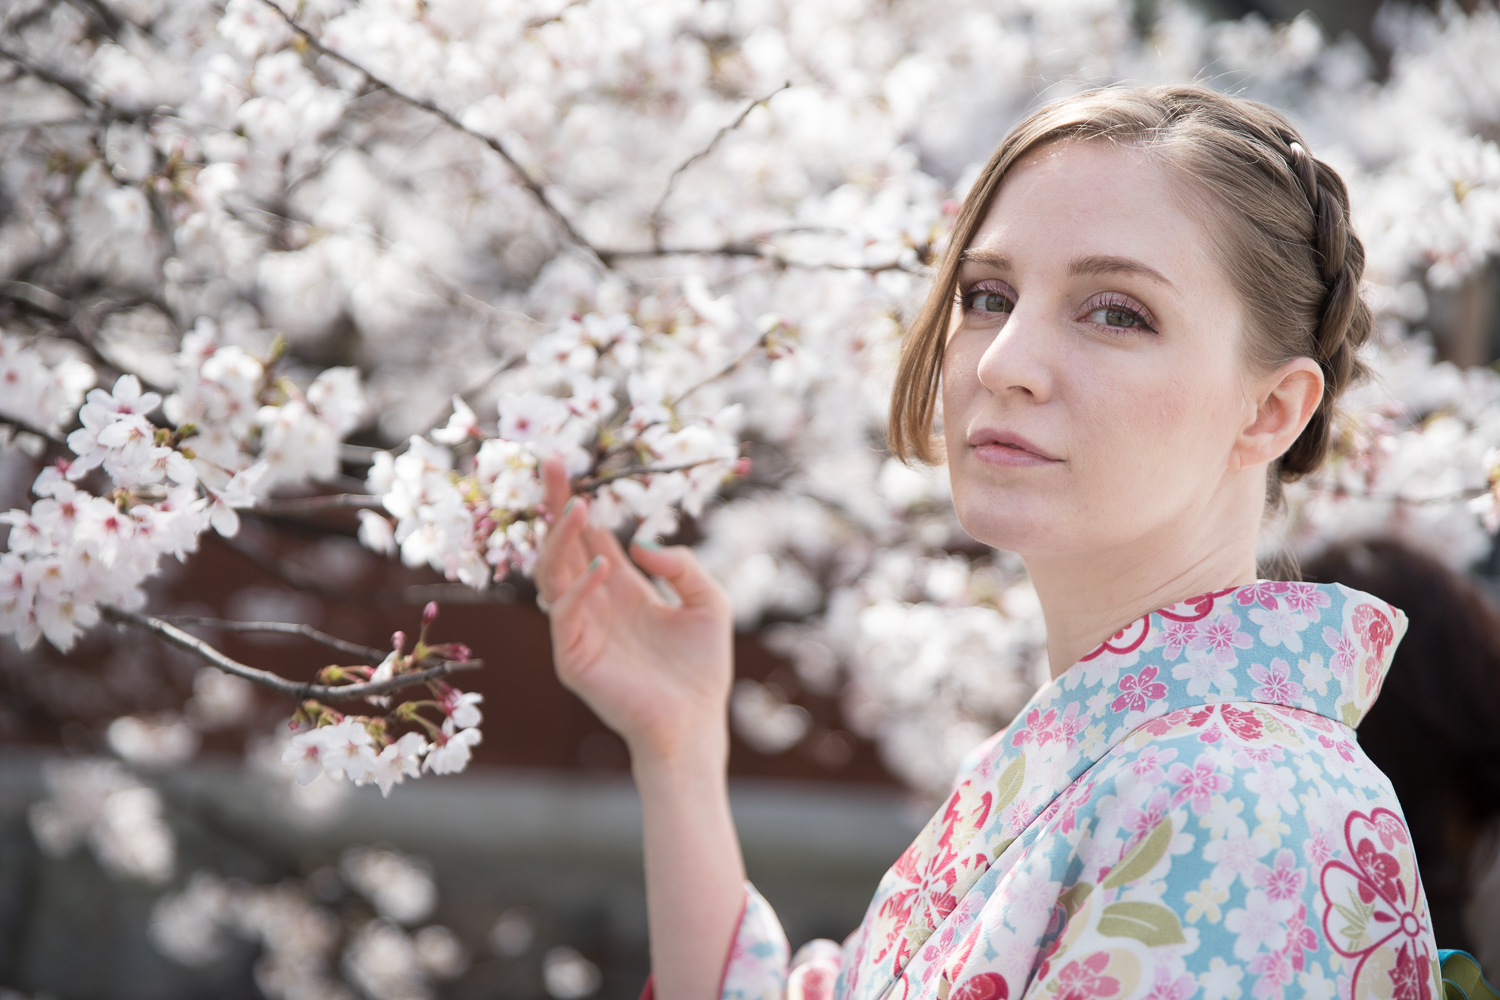 An Osaka-based model in a kimono in Kyoto during cherry blossom season